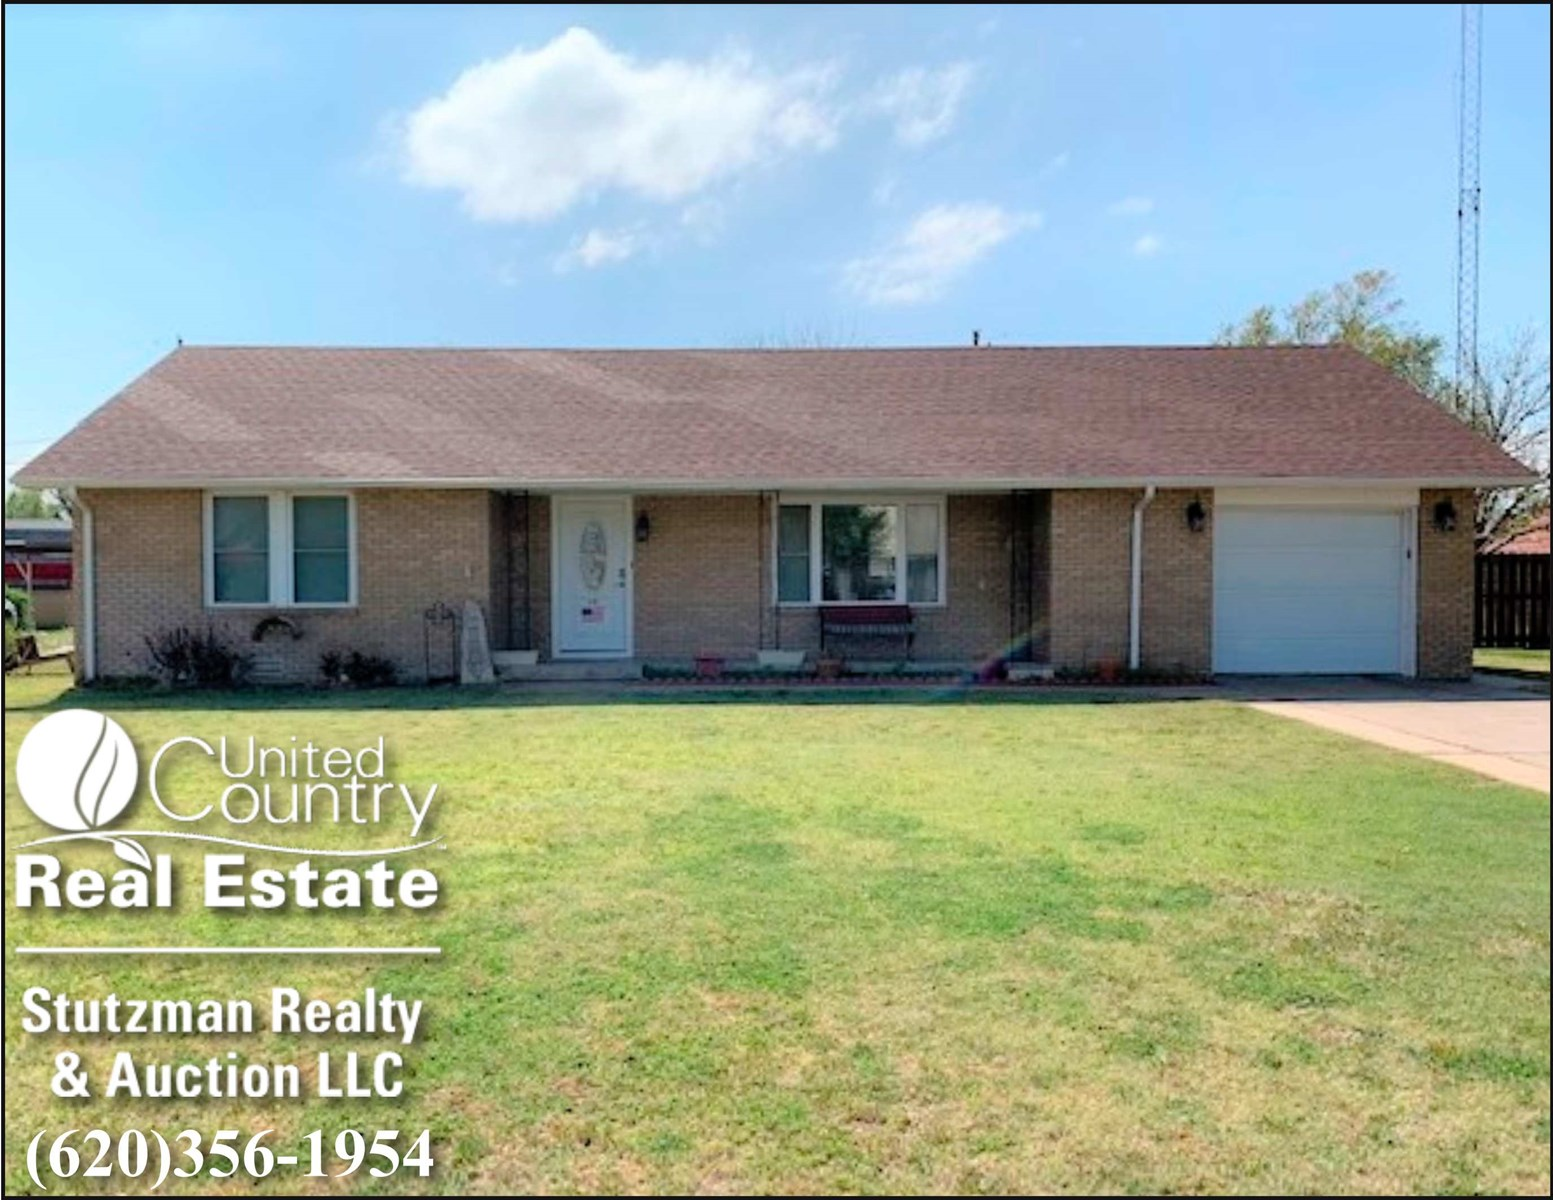 UPDATED AND WELL KEPT HOME FOR SALE IN ULYSSES, KS